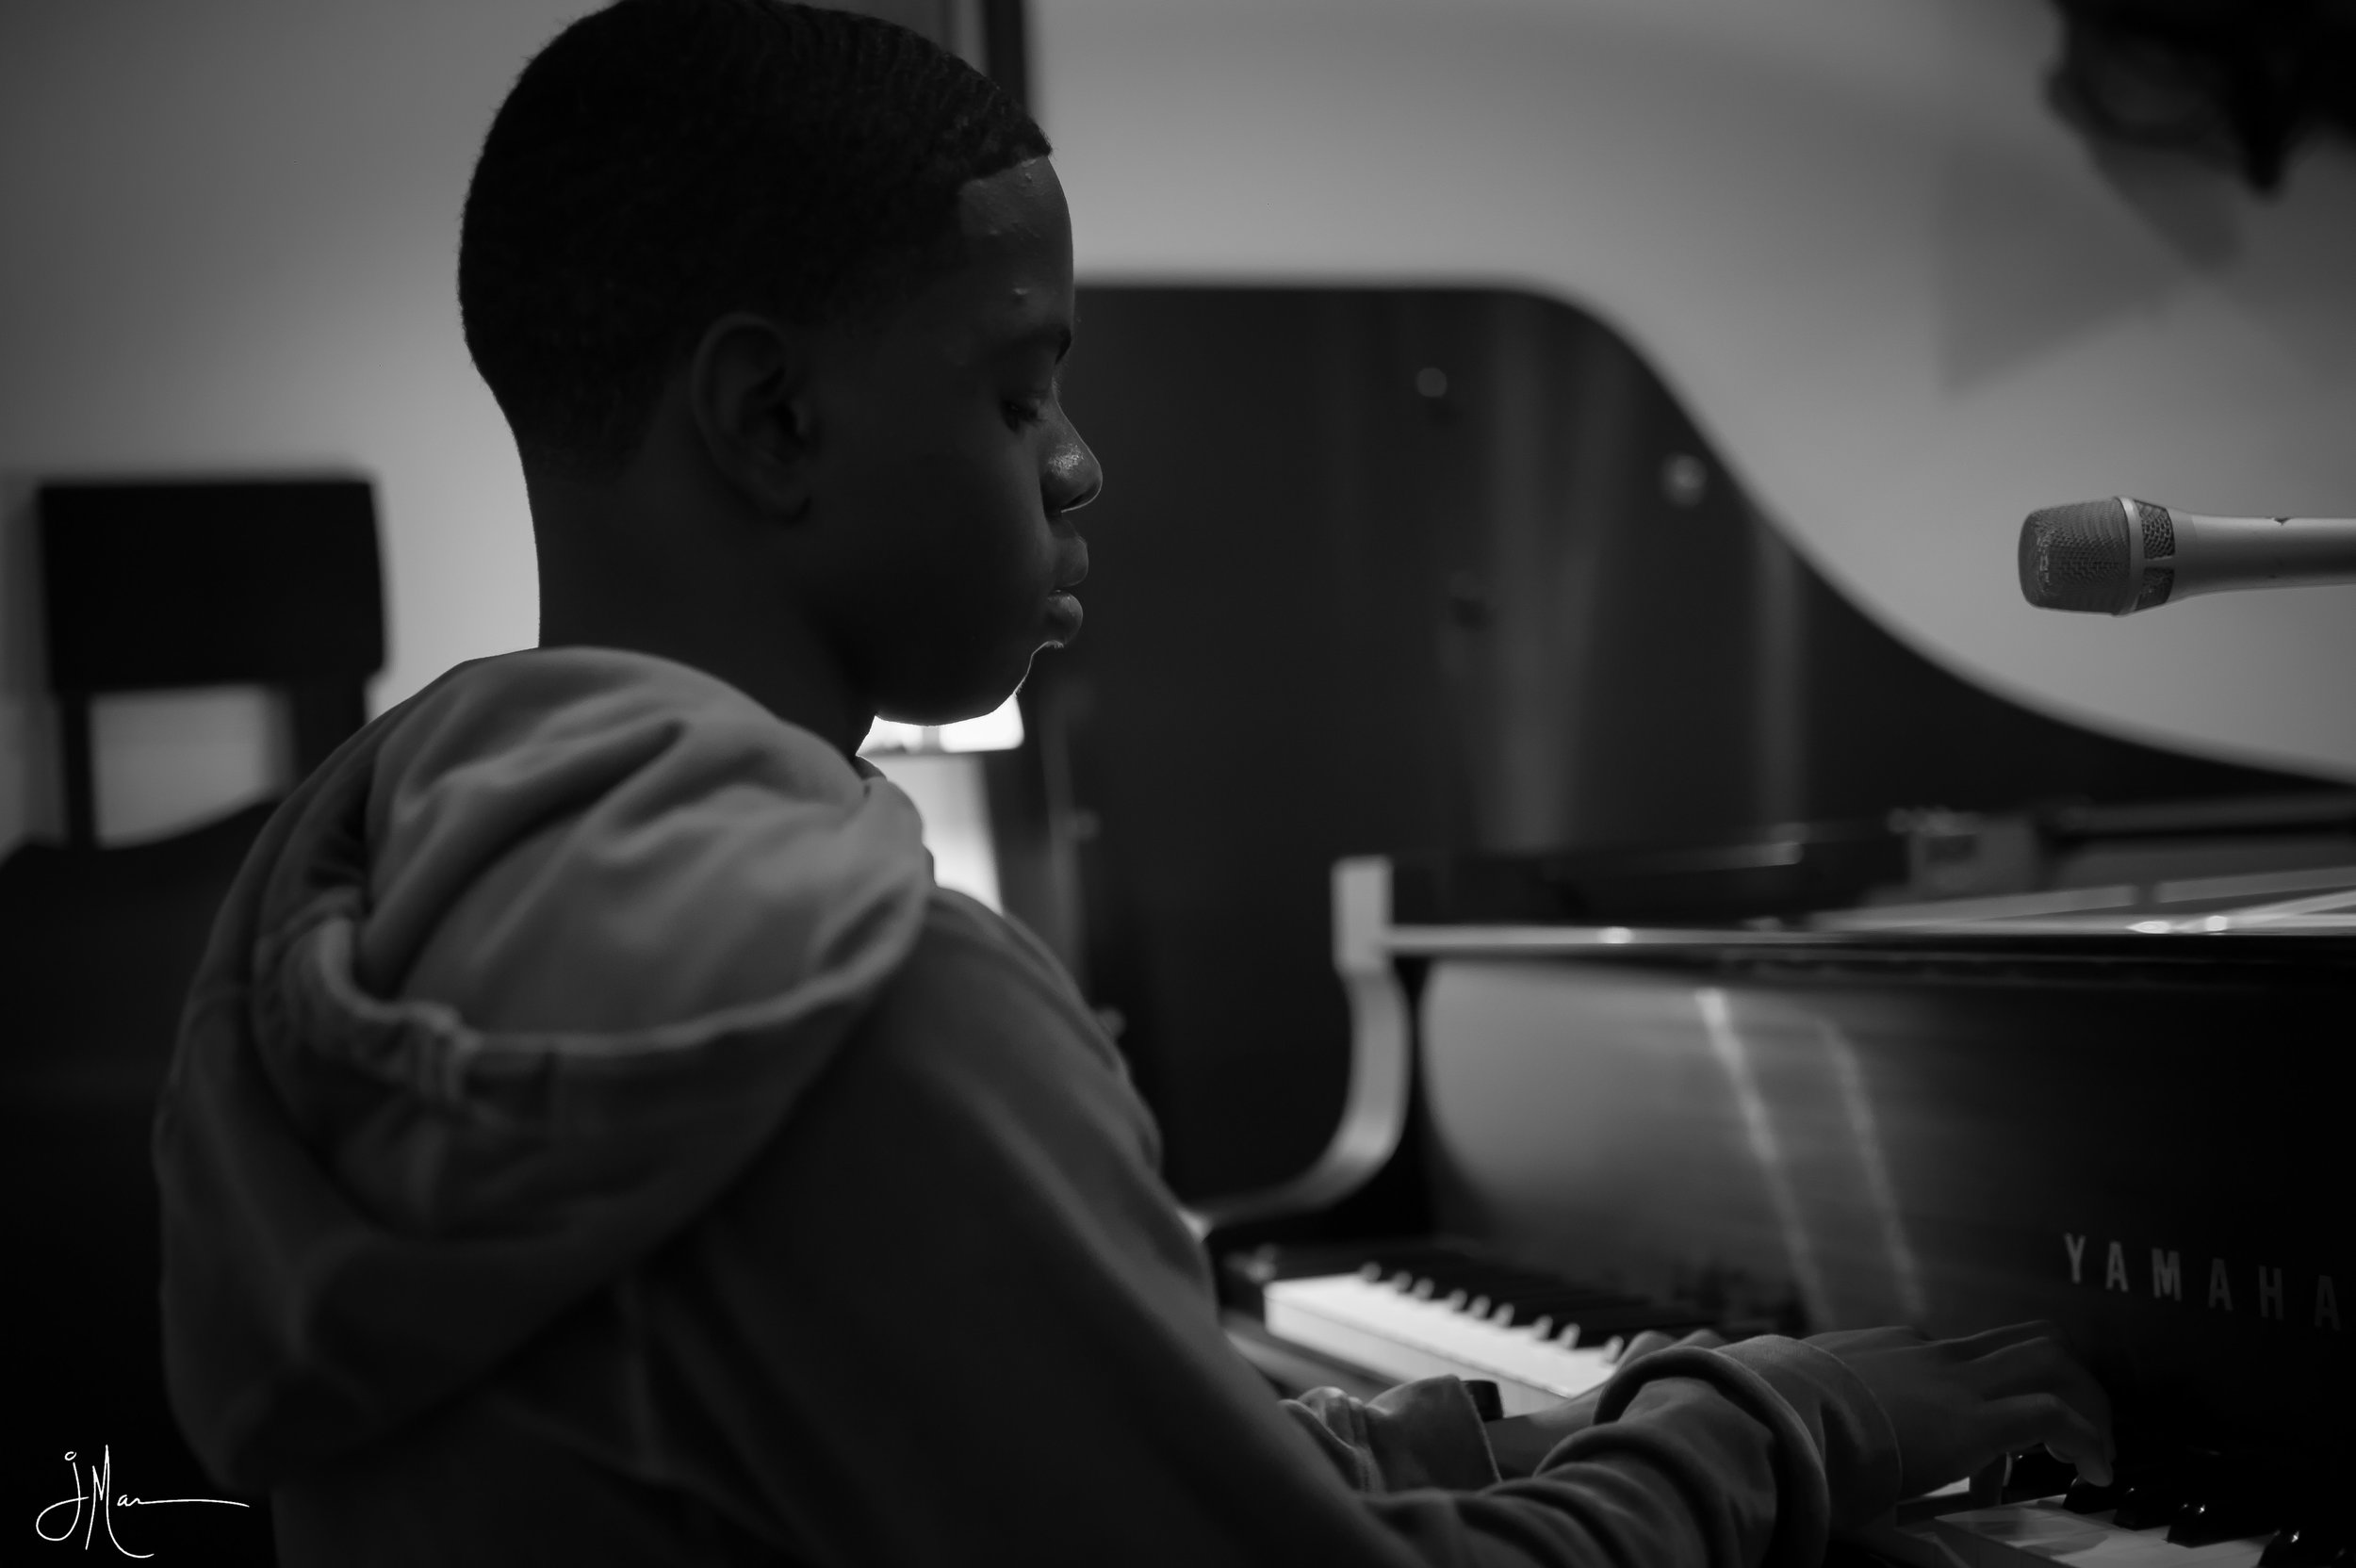 20181104_00025-B DAy and Piano.jpg